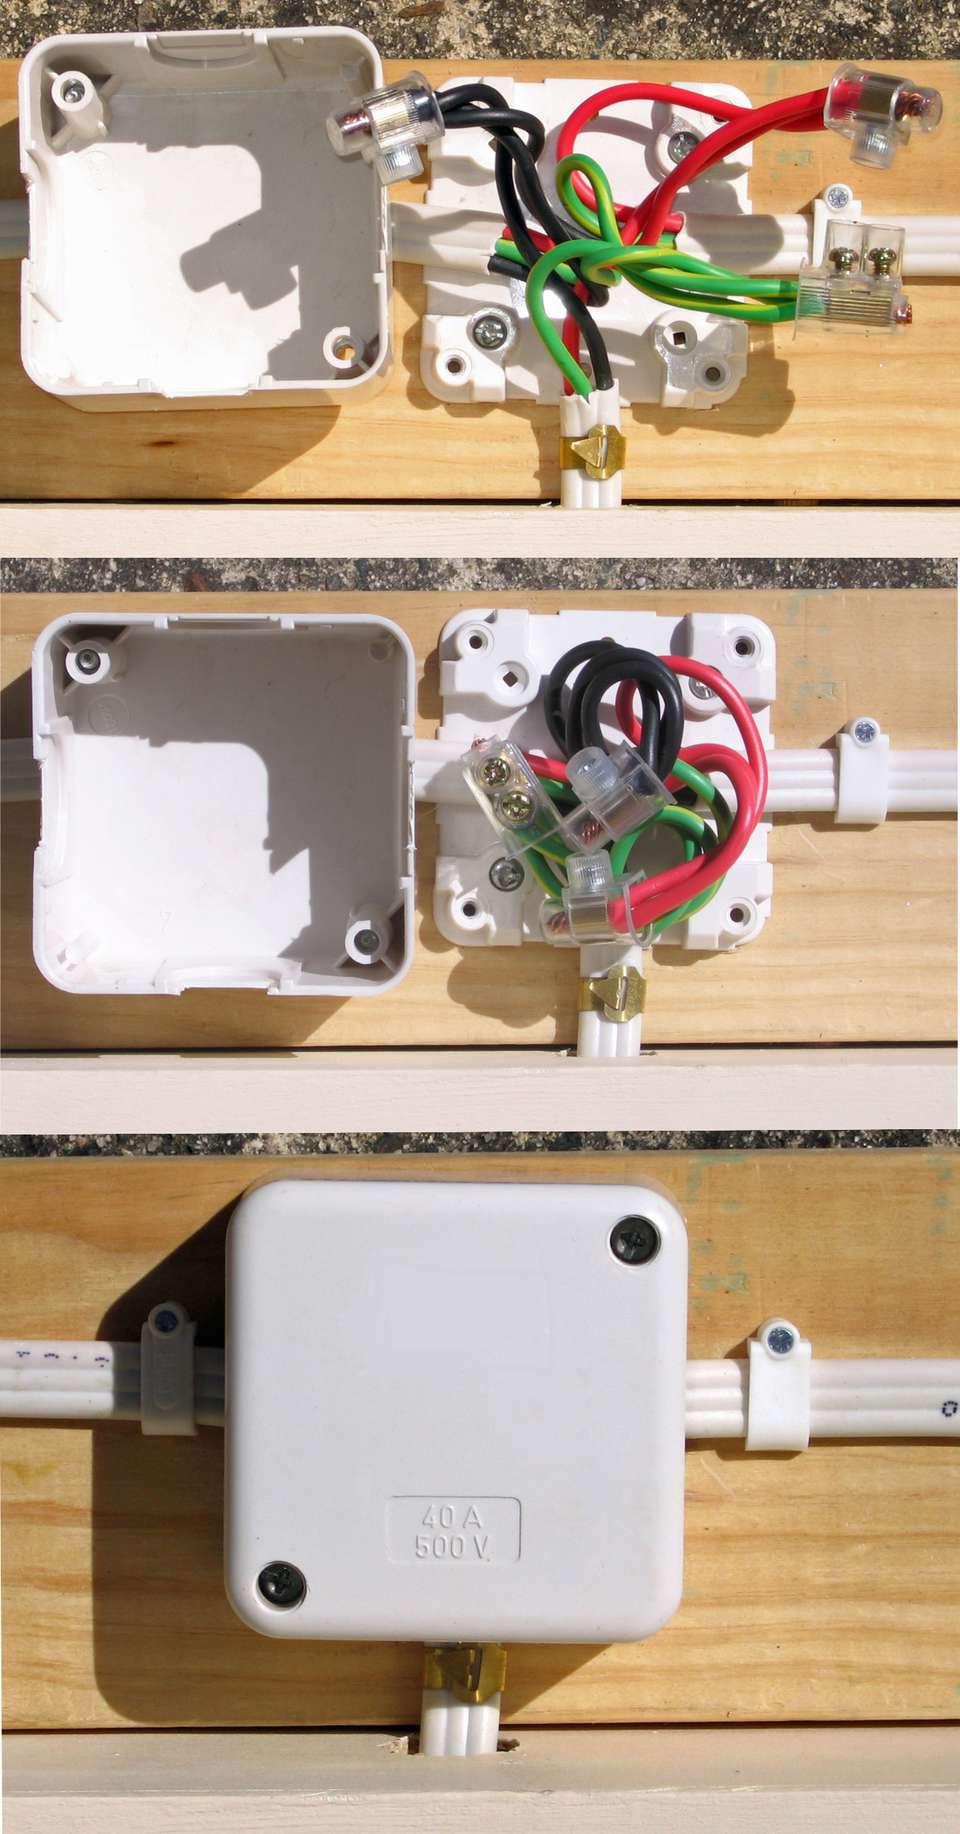 A surface-mount junction box